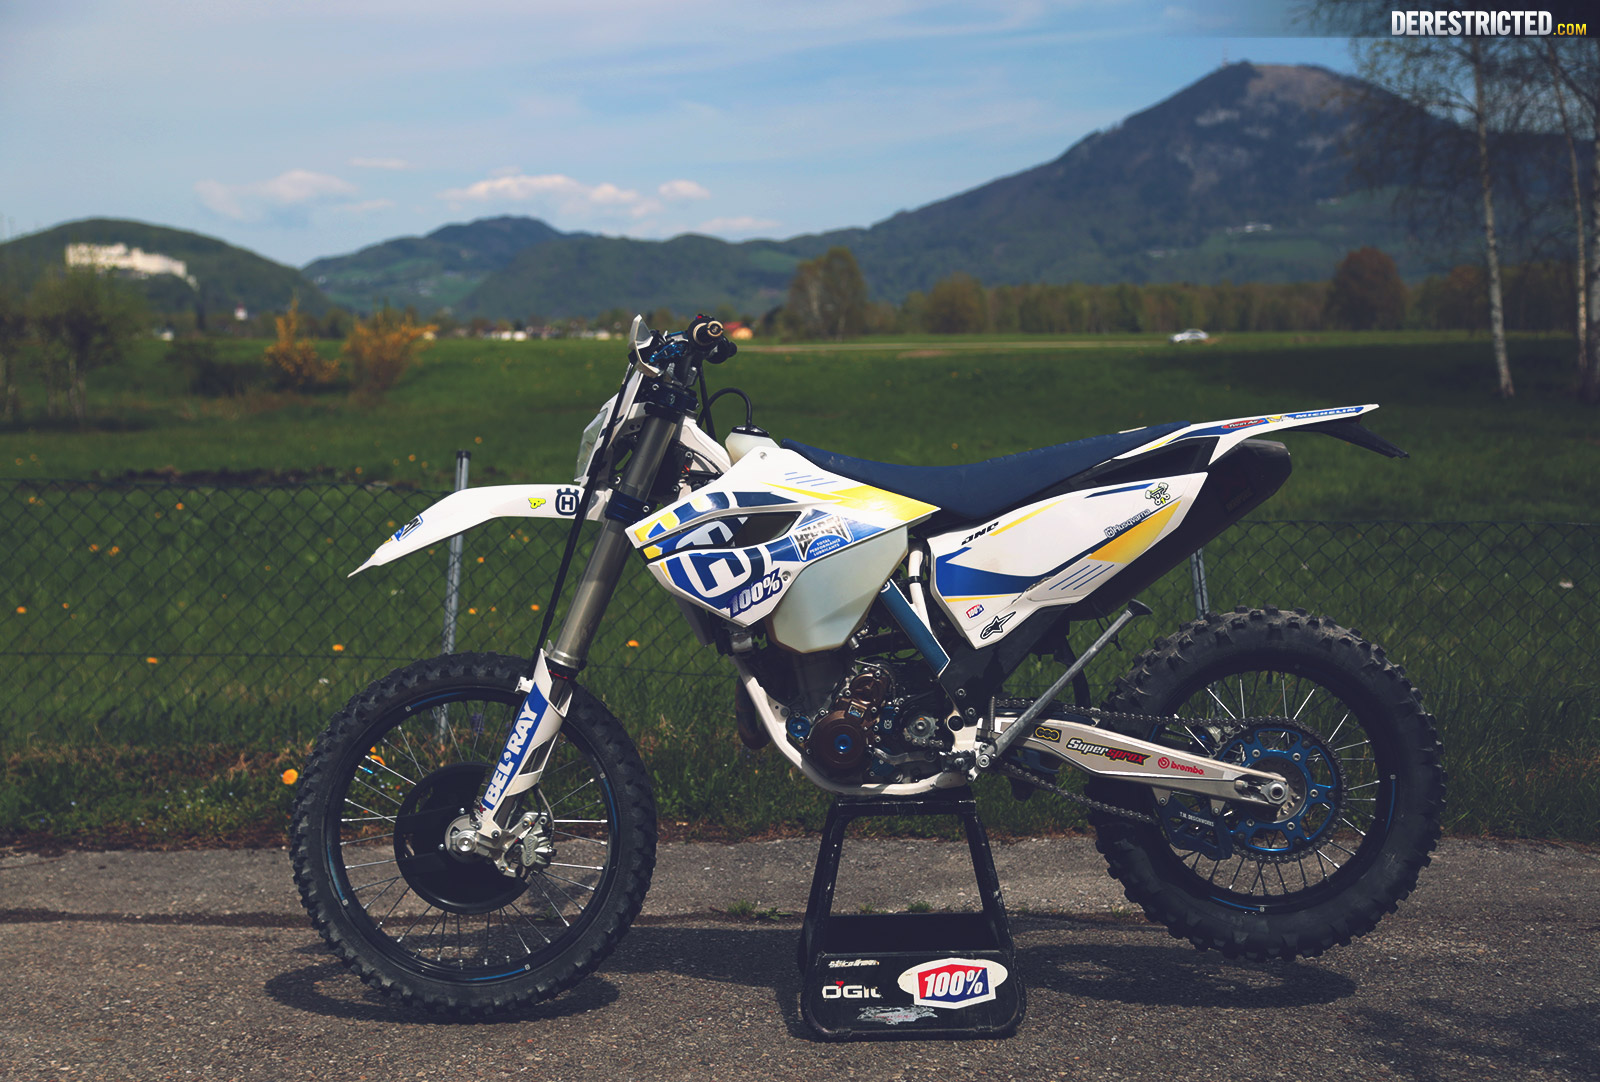 husqvarna-fe350-review-02